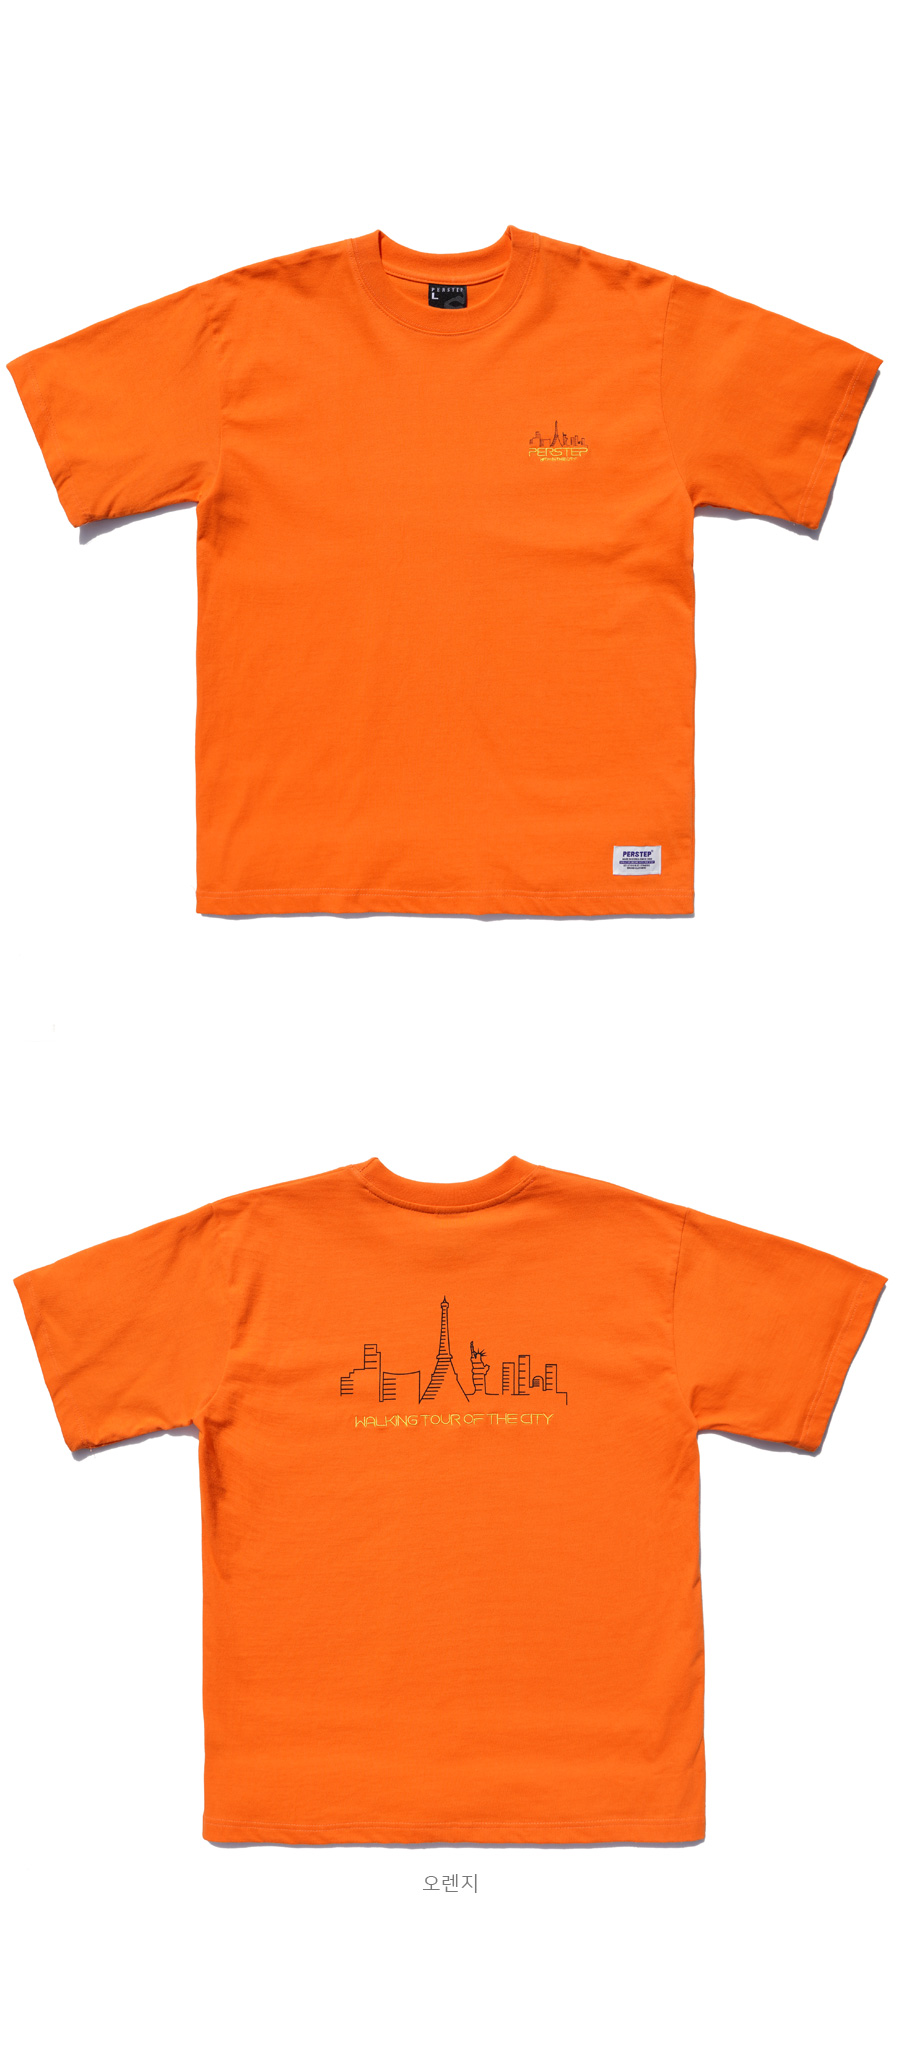 4350_detail_orange_ms_01.jpg